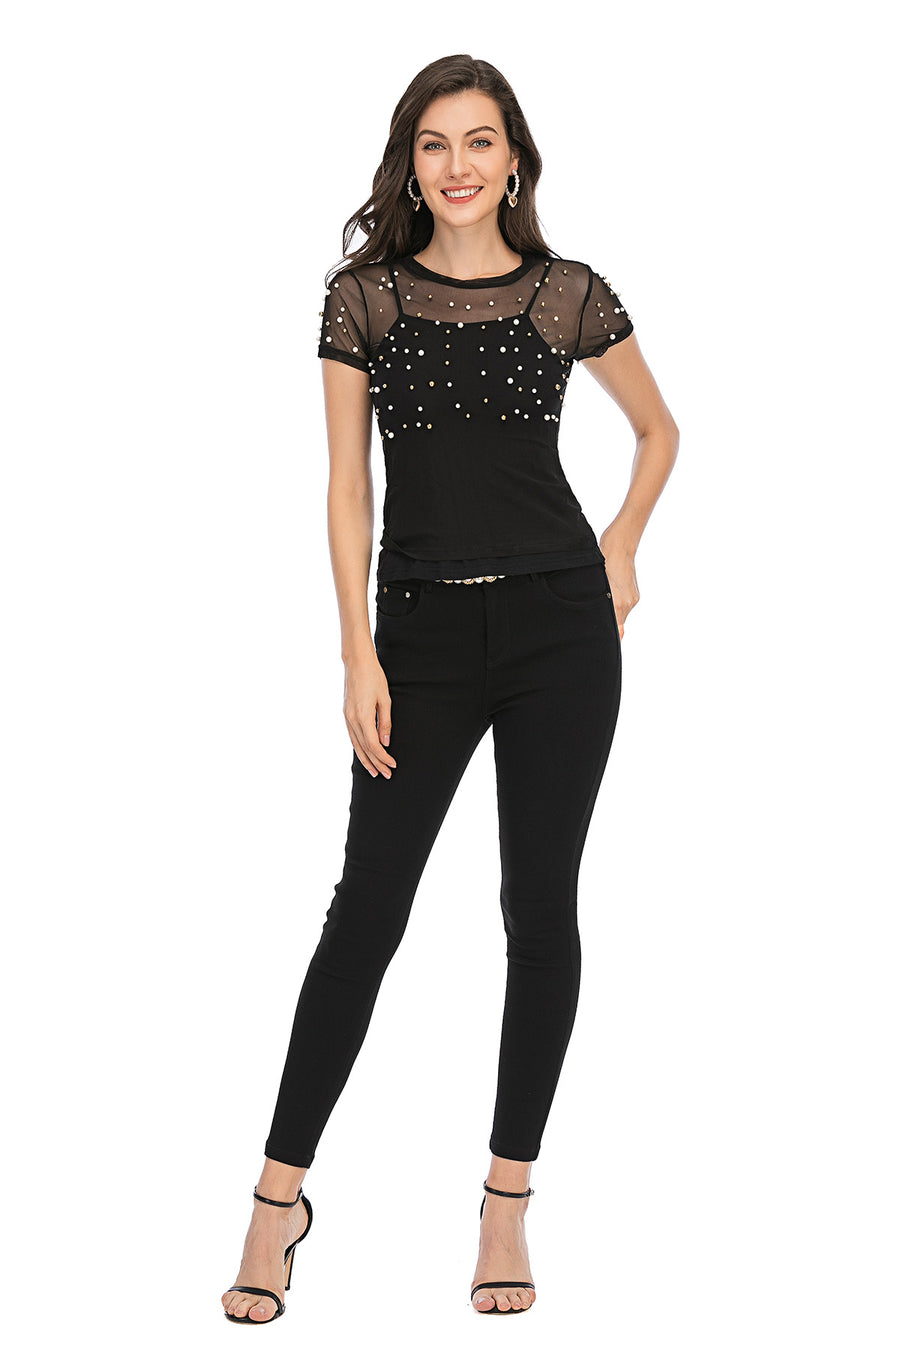 Mantra Pakistan Mesh top with pearls | Western Wear